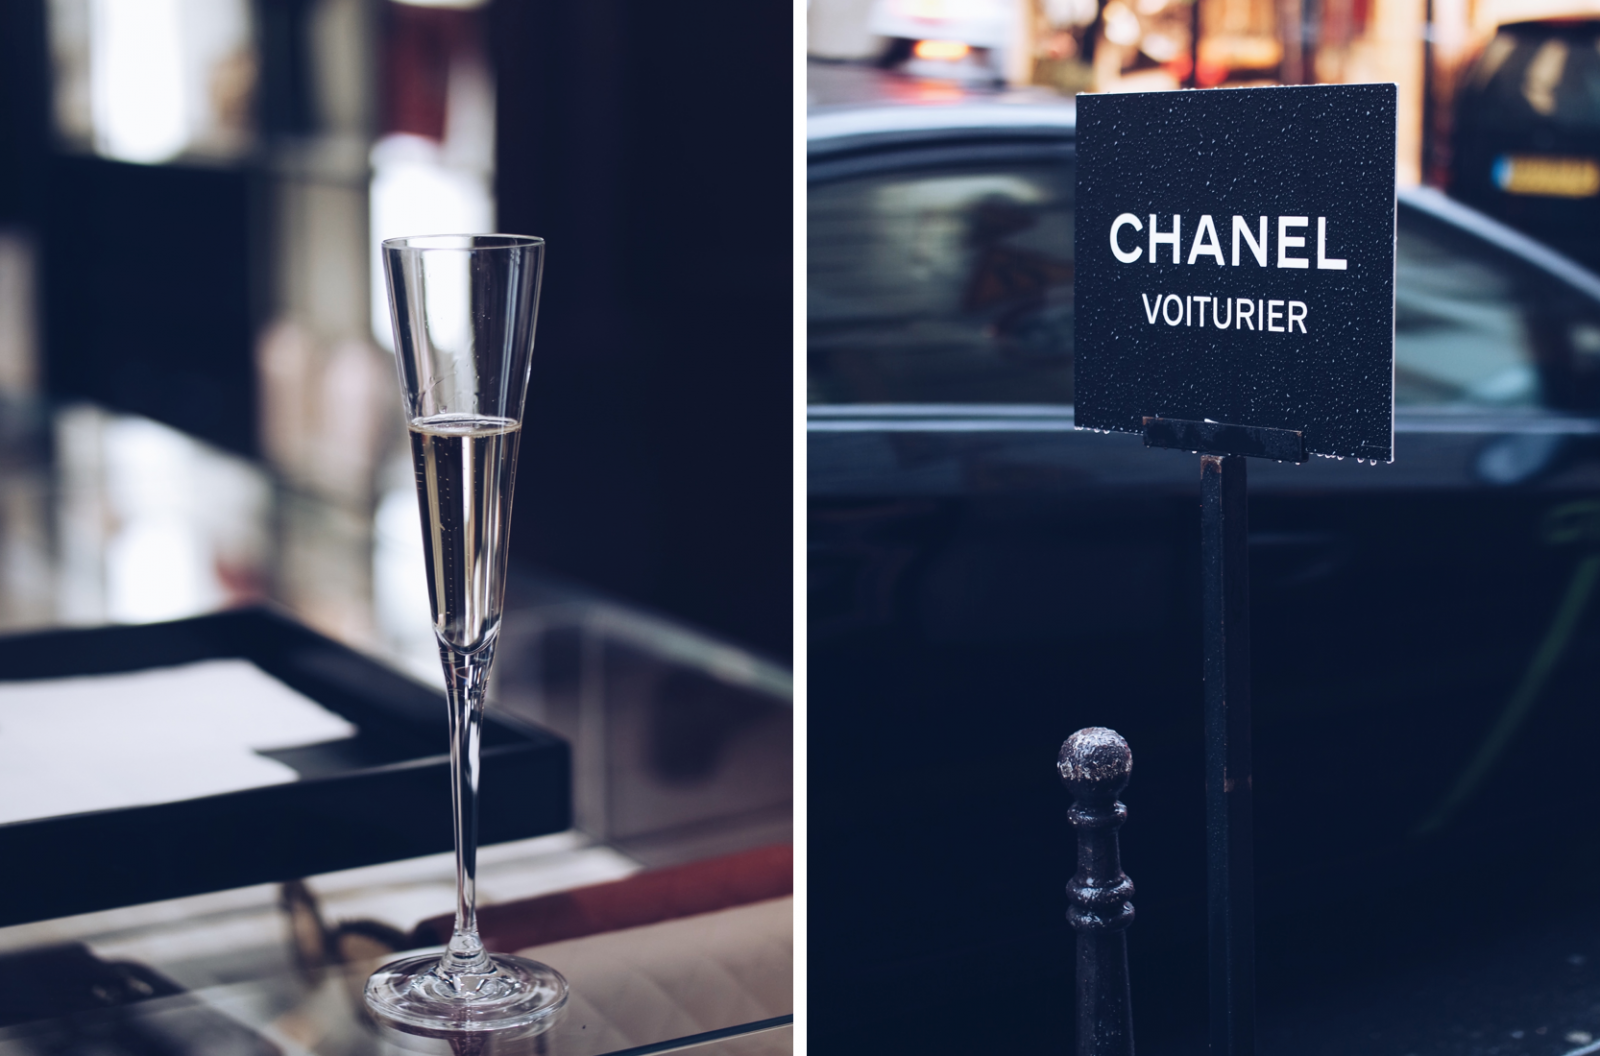 Long Weekend In Paris - Chanel Rue Cambon